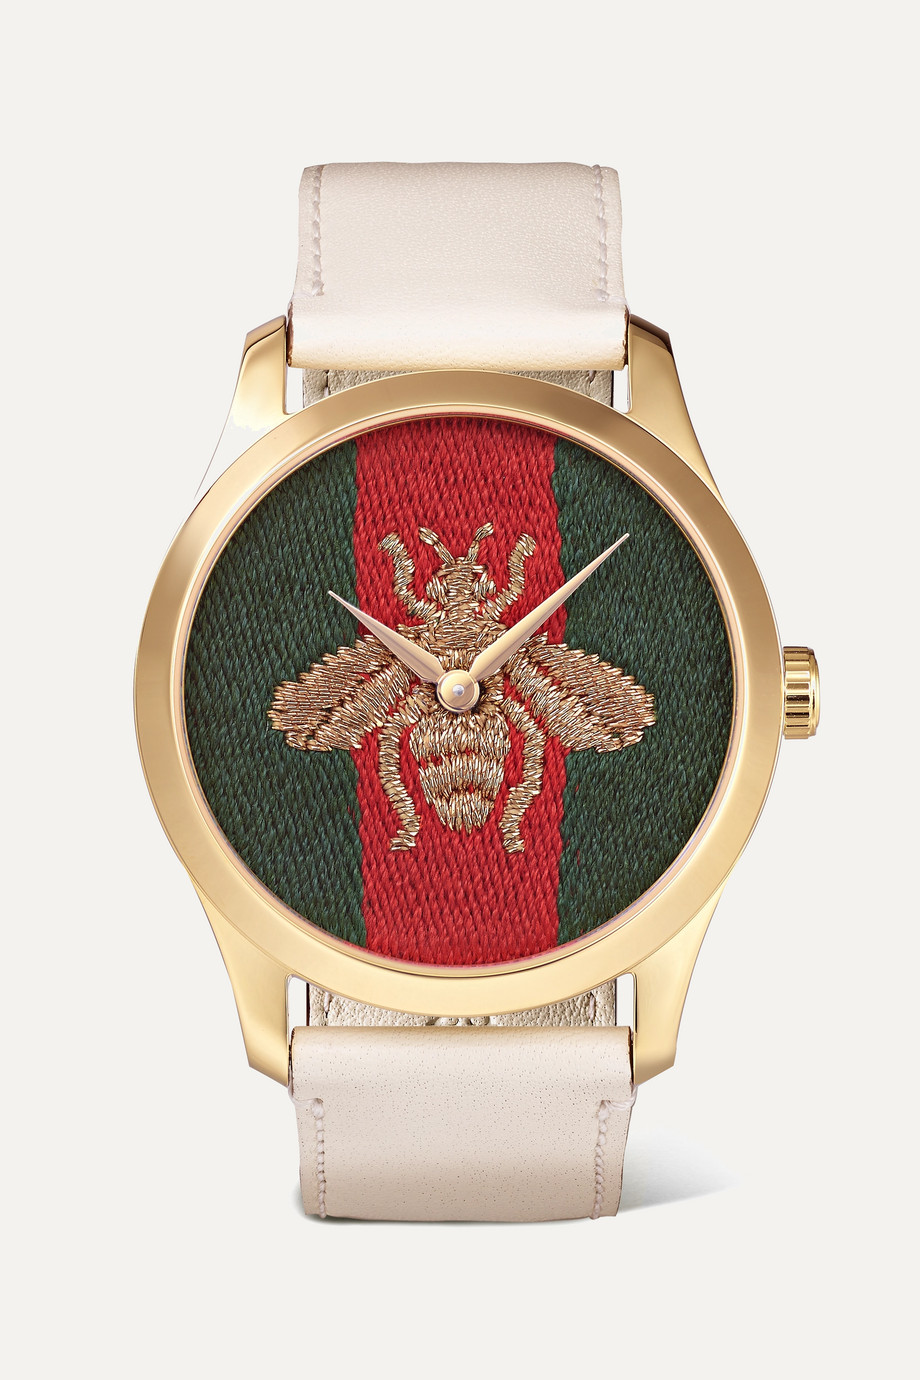 Gucci G-Timeless gold-tone and leather watch